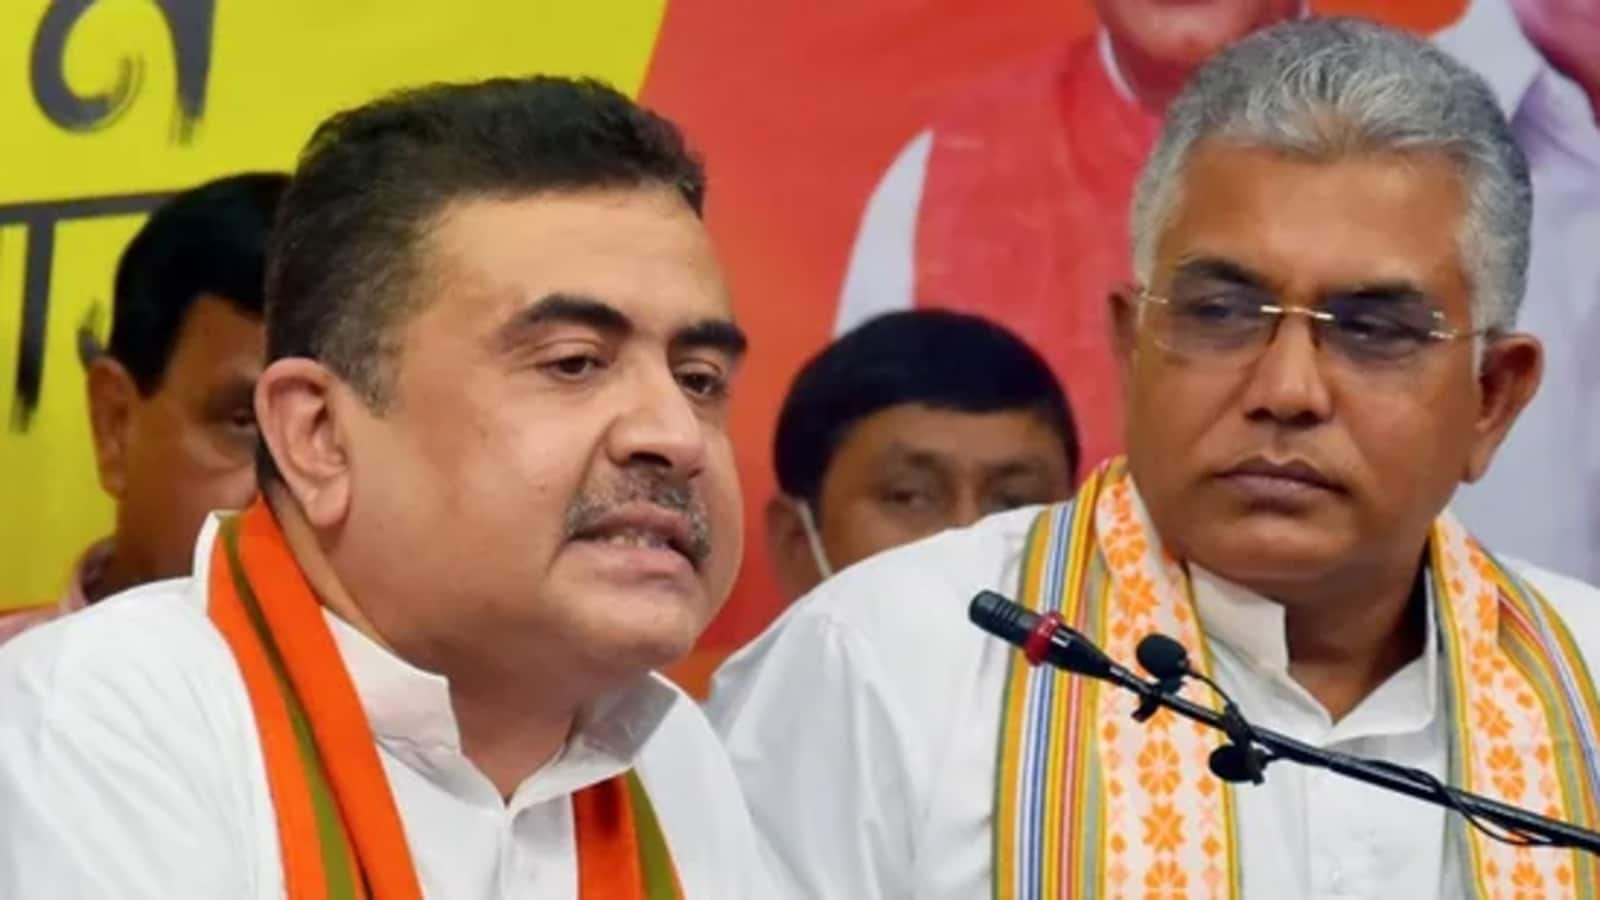 Bengal BJP seeks disqualification of 2 turncoat MLAs, moves assembly Speaker